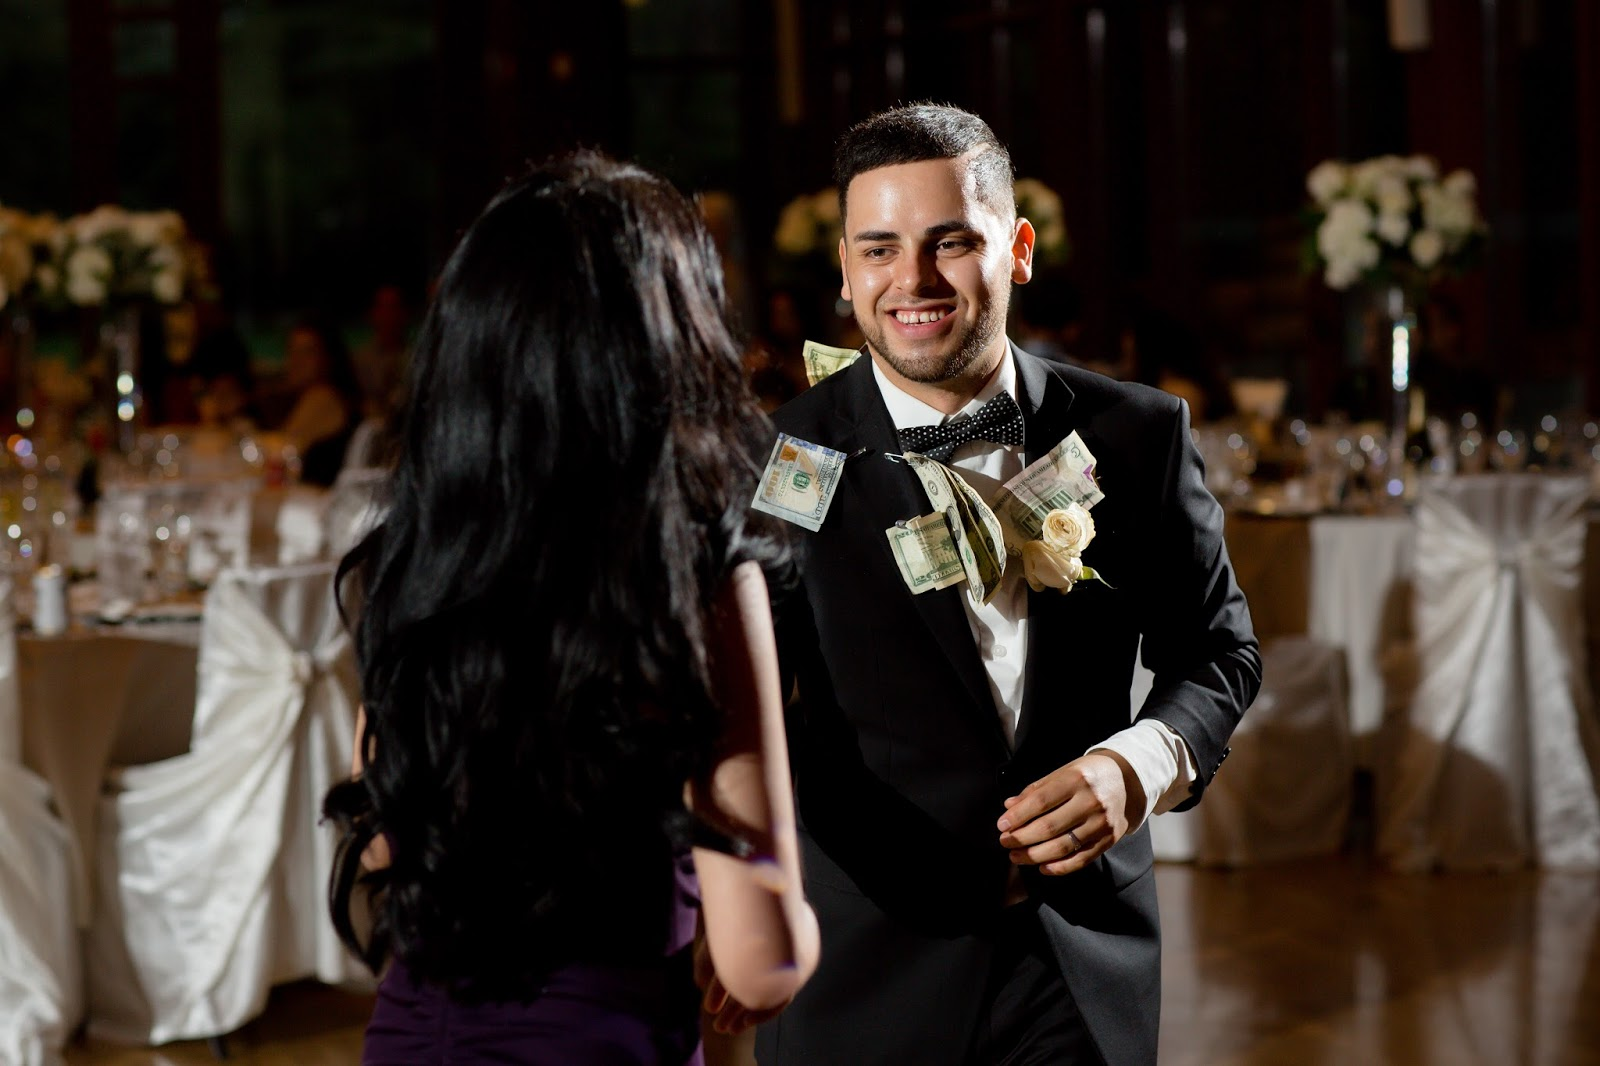 Bridesmaid joins Groom for Money Pinning Dance